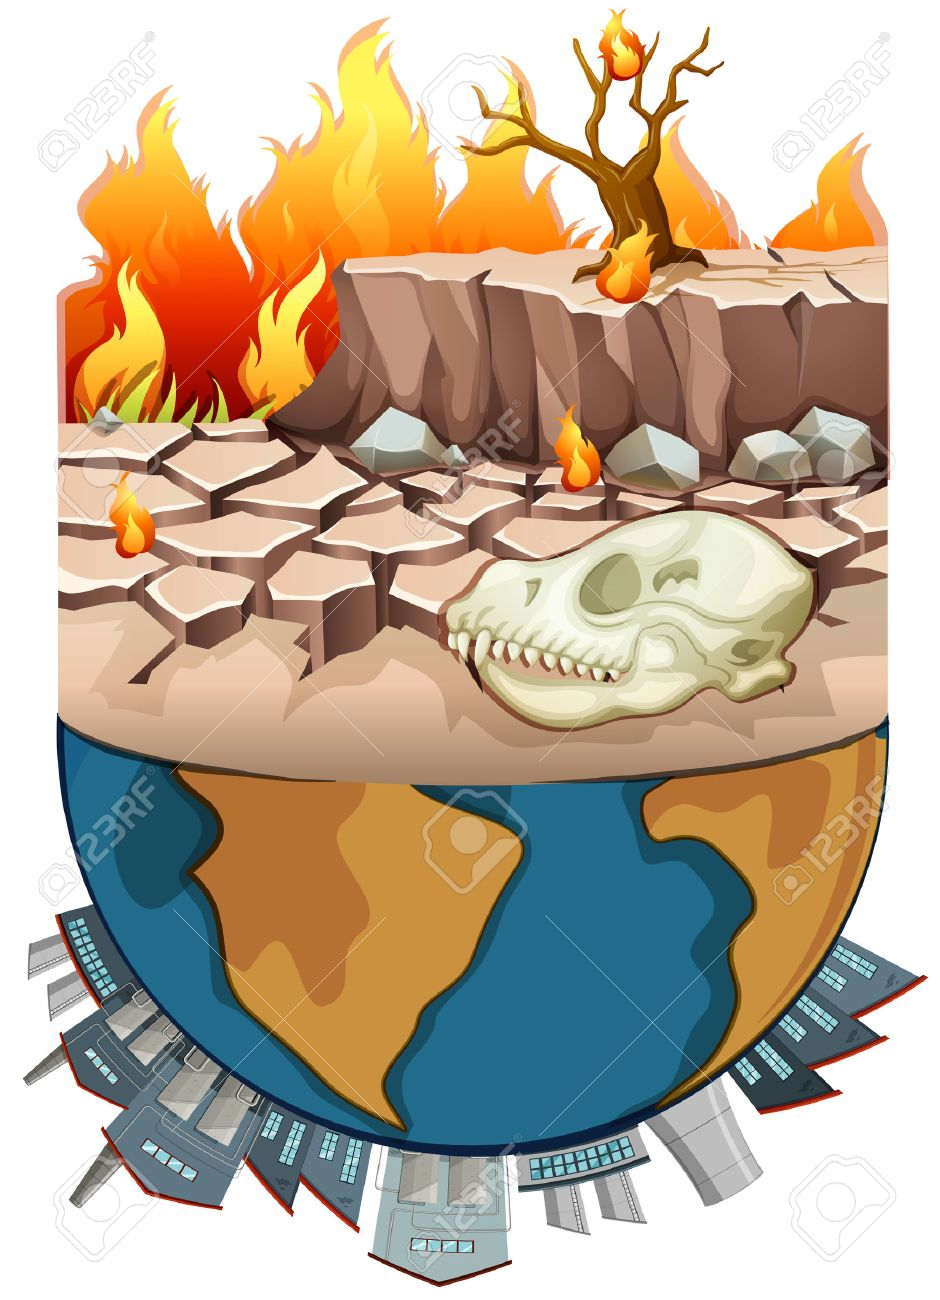 Drought Cartoon Cliparts Free Download Clip Art.